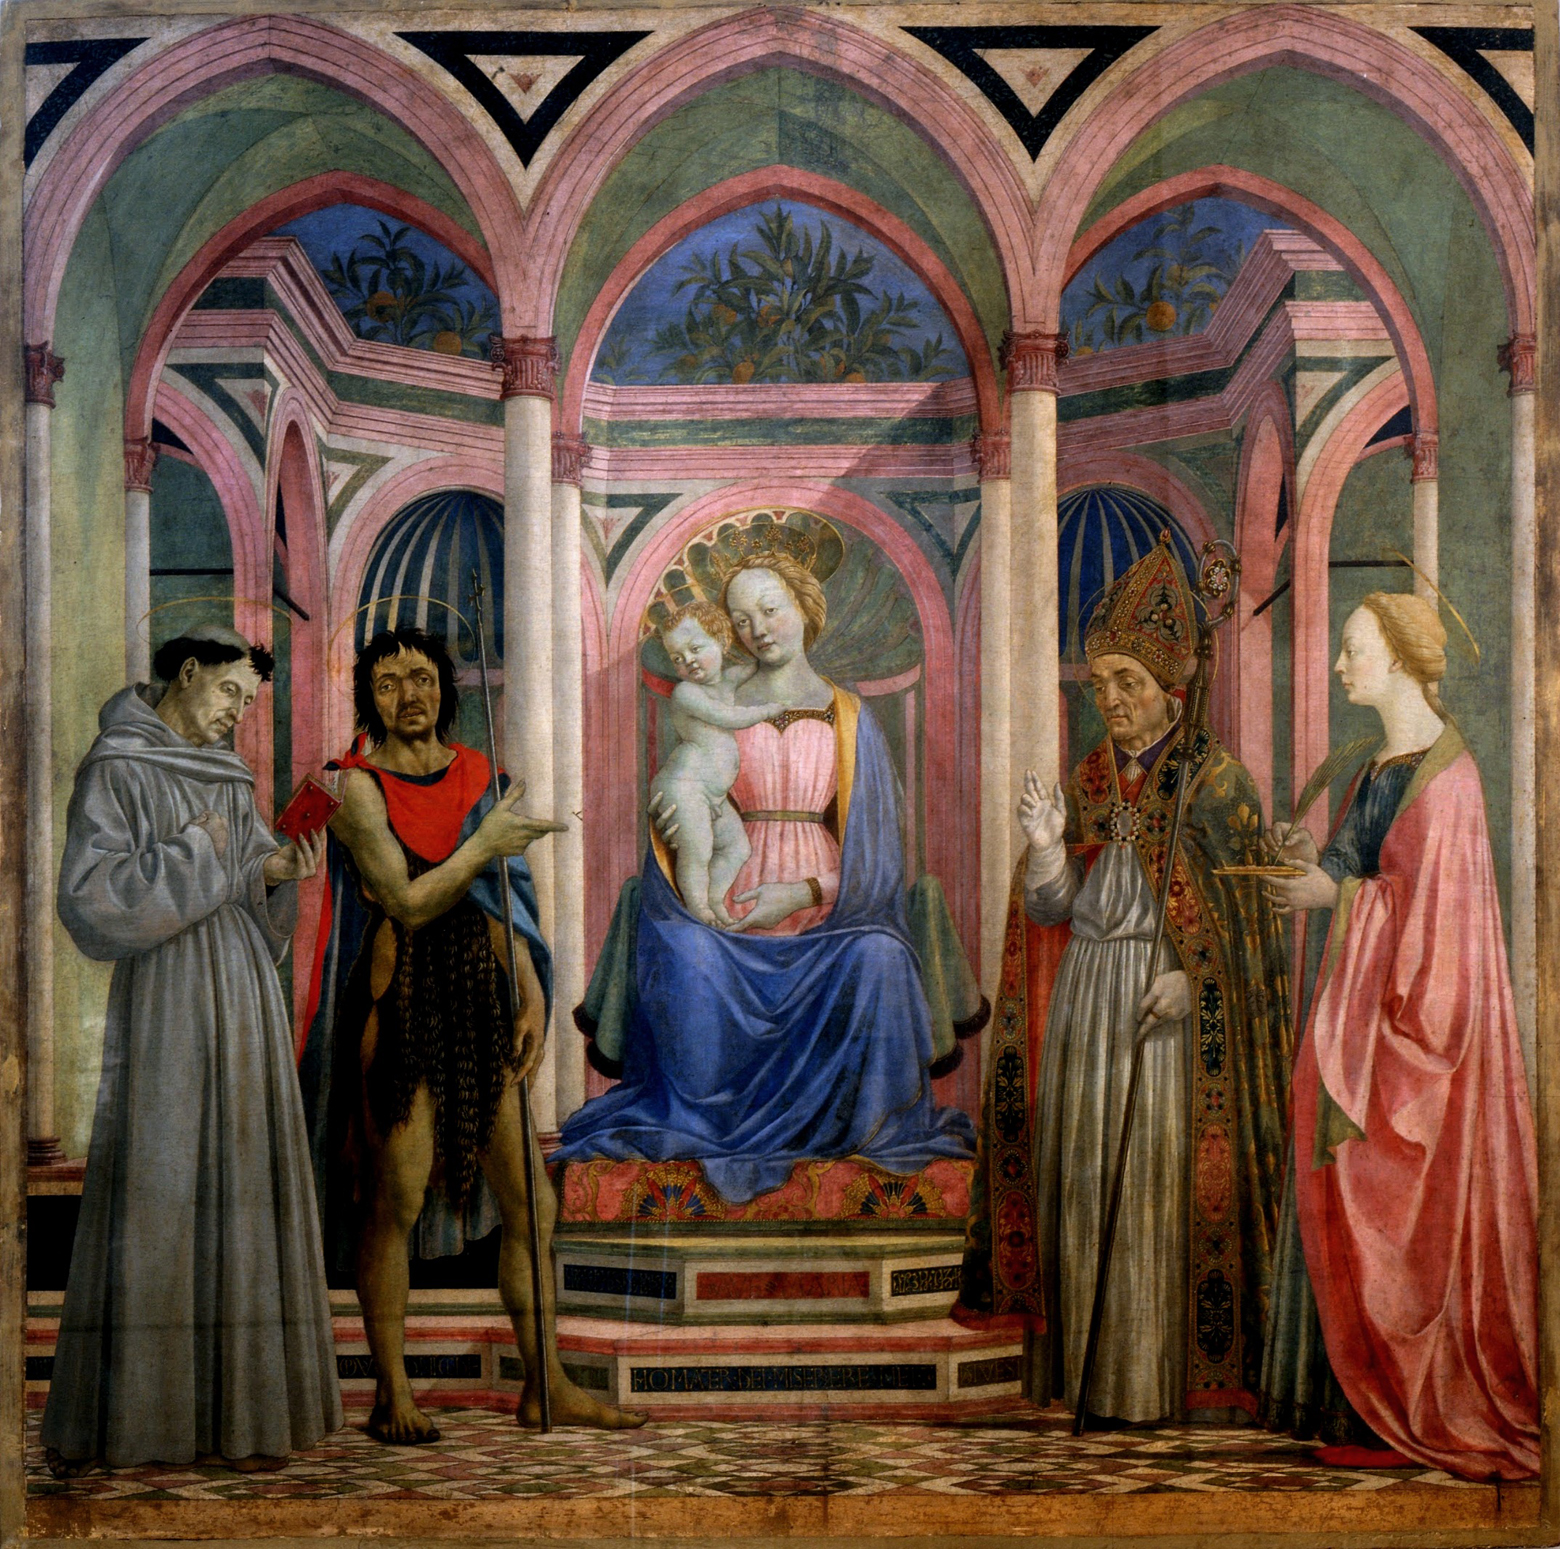 St. Lucy Altarpiece by Domenico Veneziano, tempera on panel 1445-7. Located at the Galerie Uffizi, Florence.